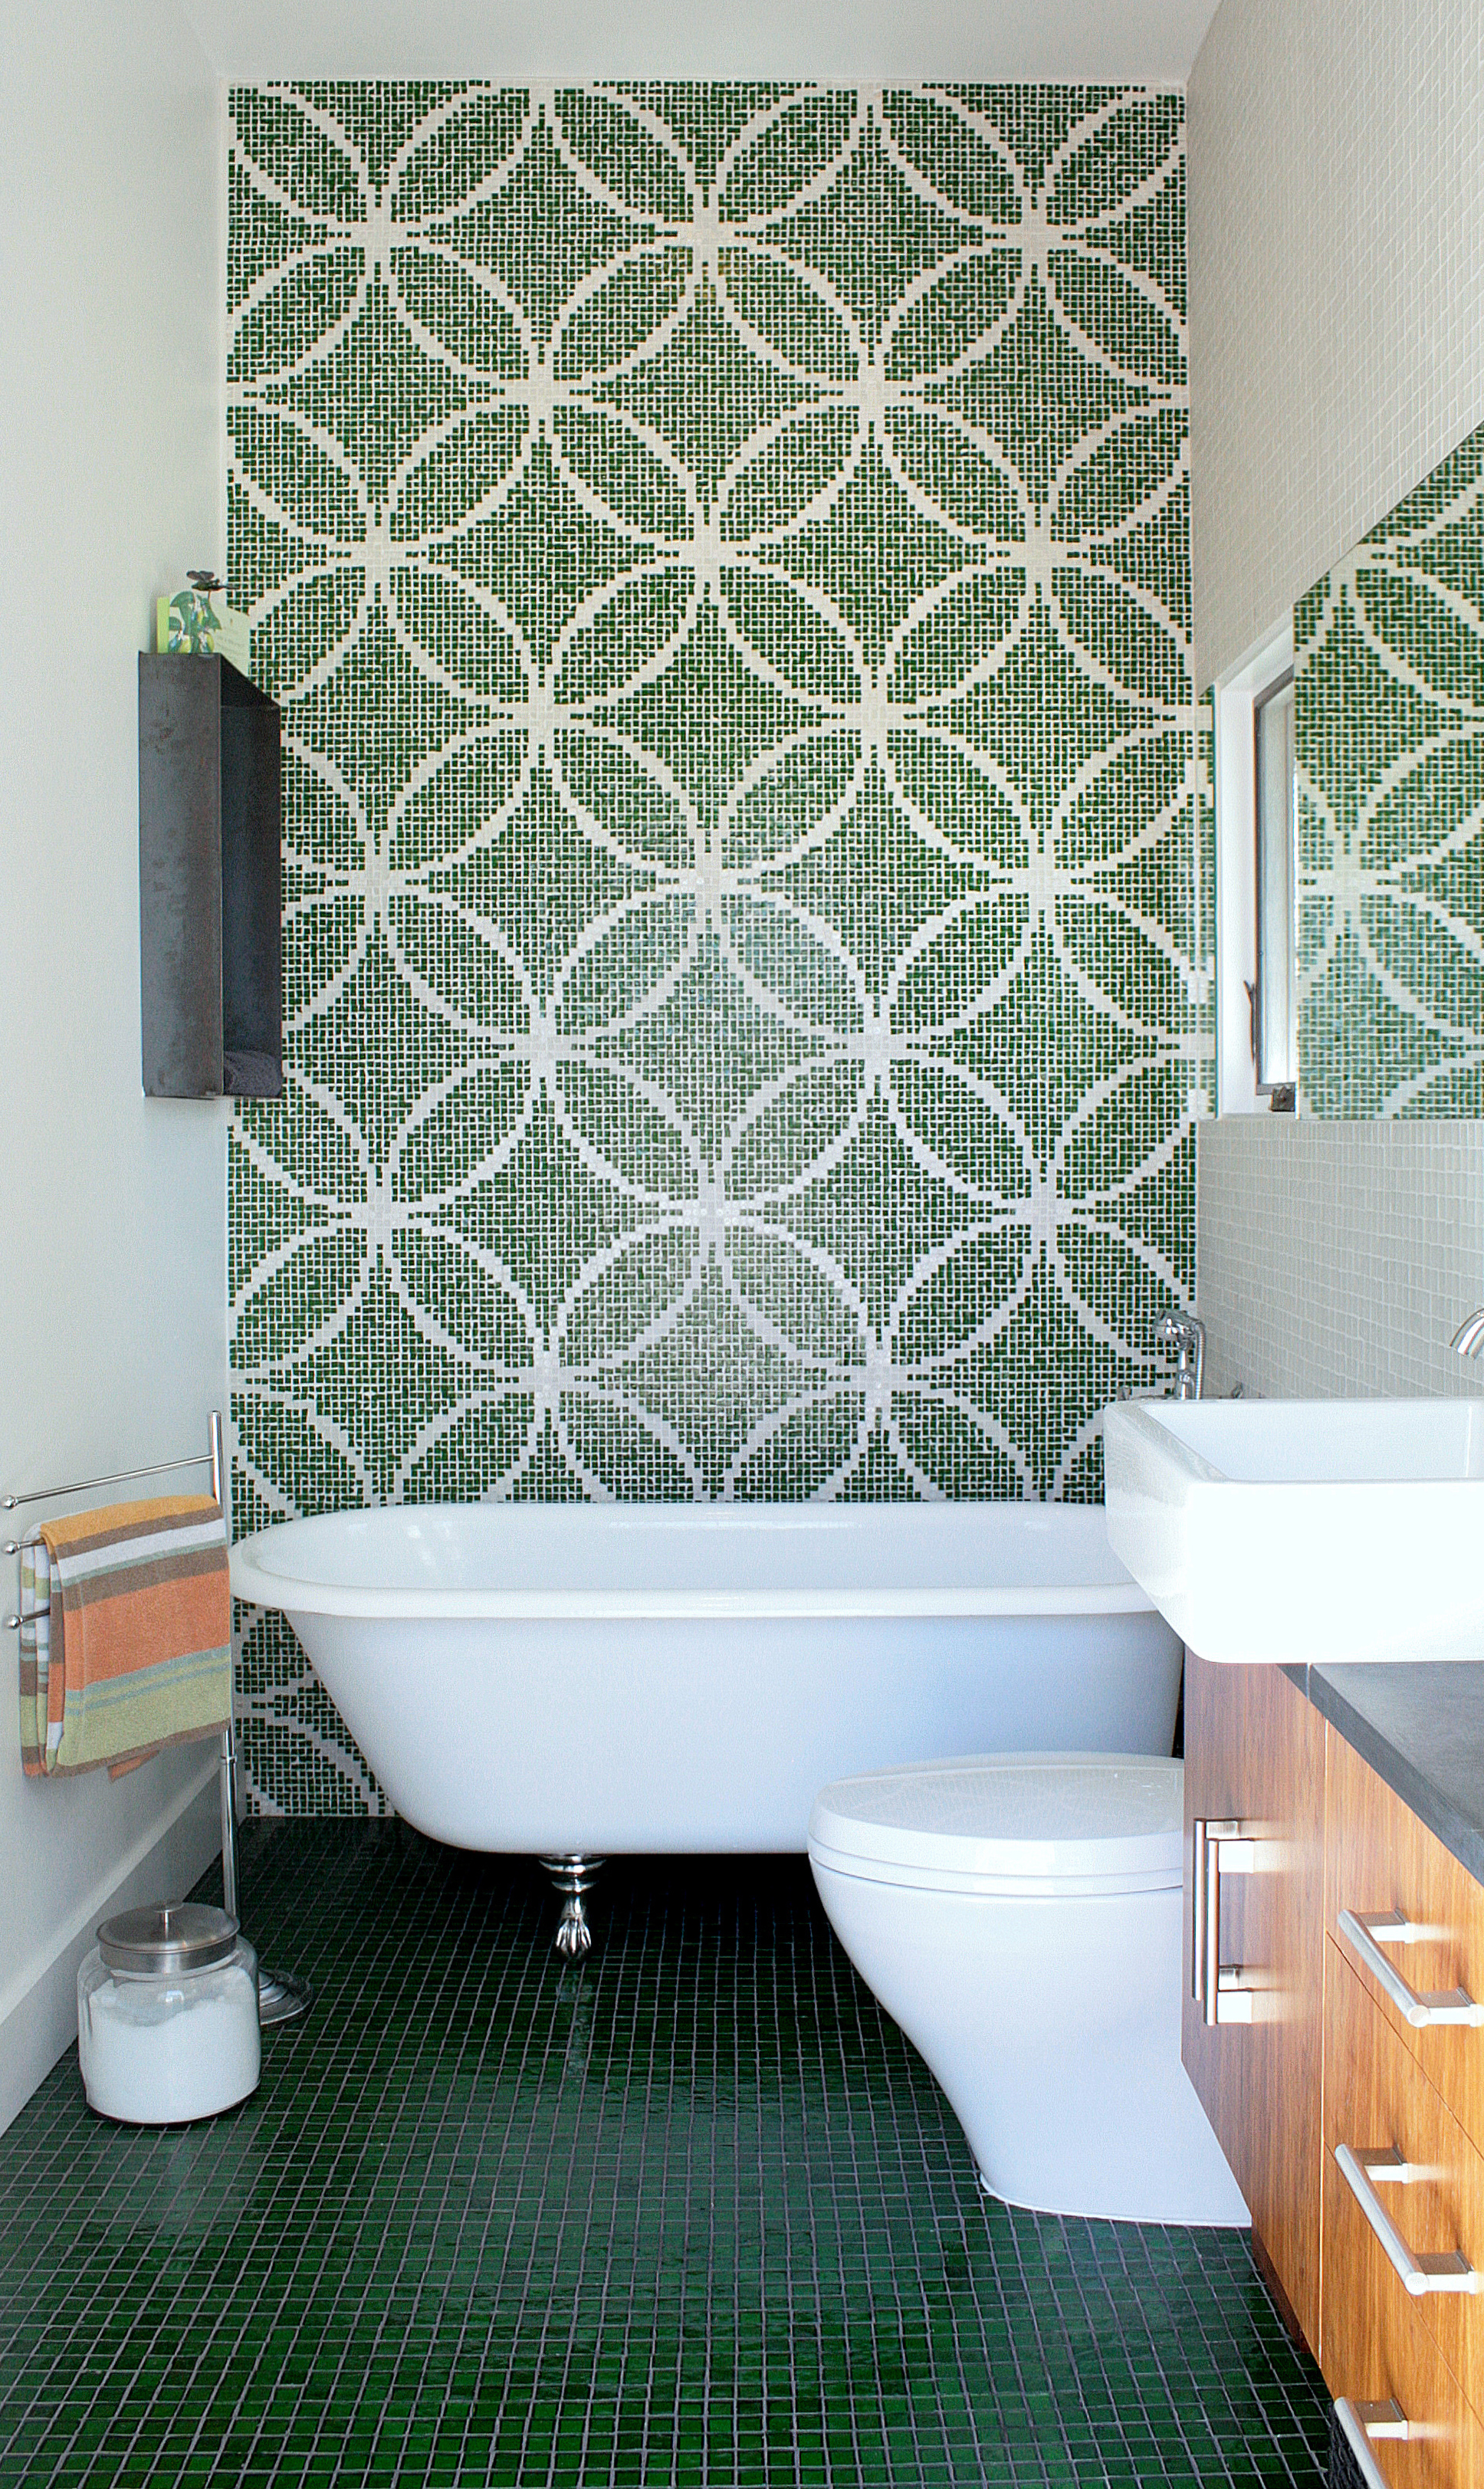 Incroyable Waterproof Wallpaper For Shower Home Safe